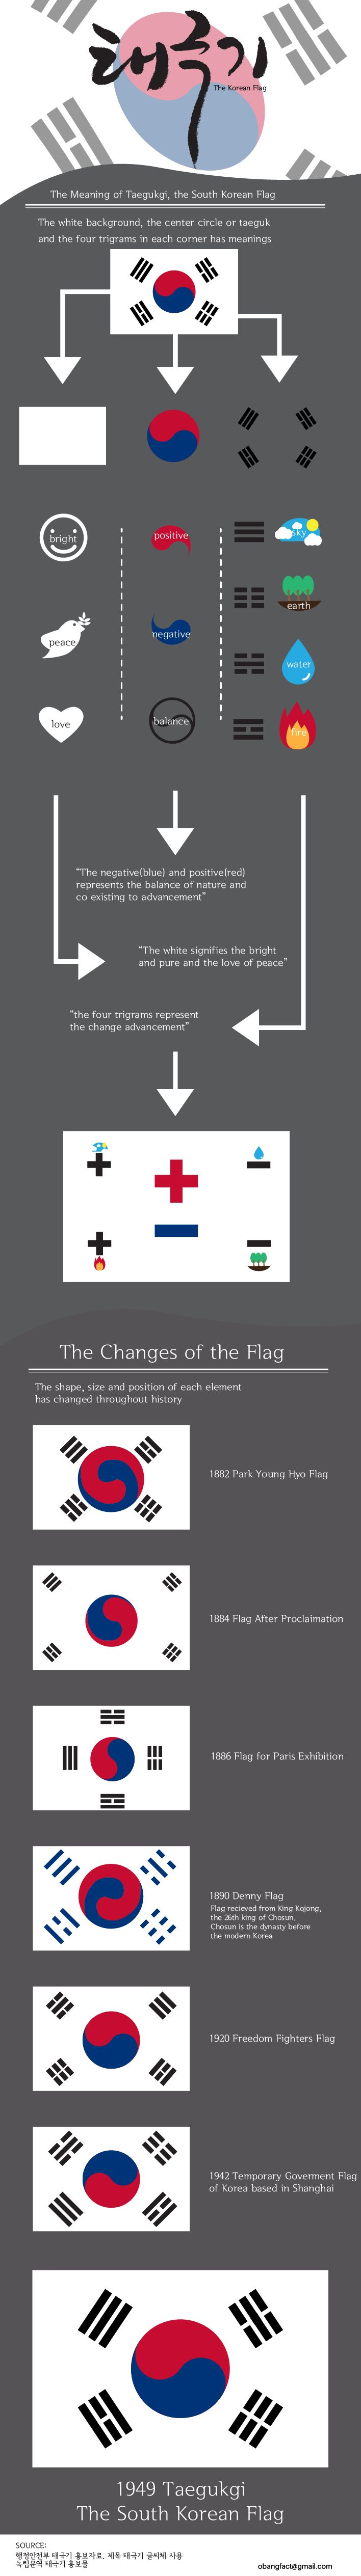 Flags of The World | Visual.ly Blog